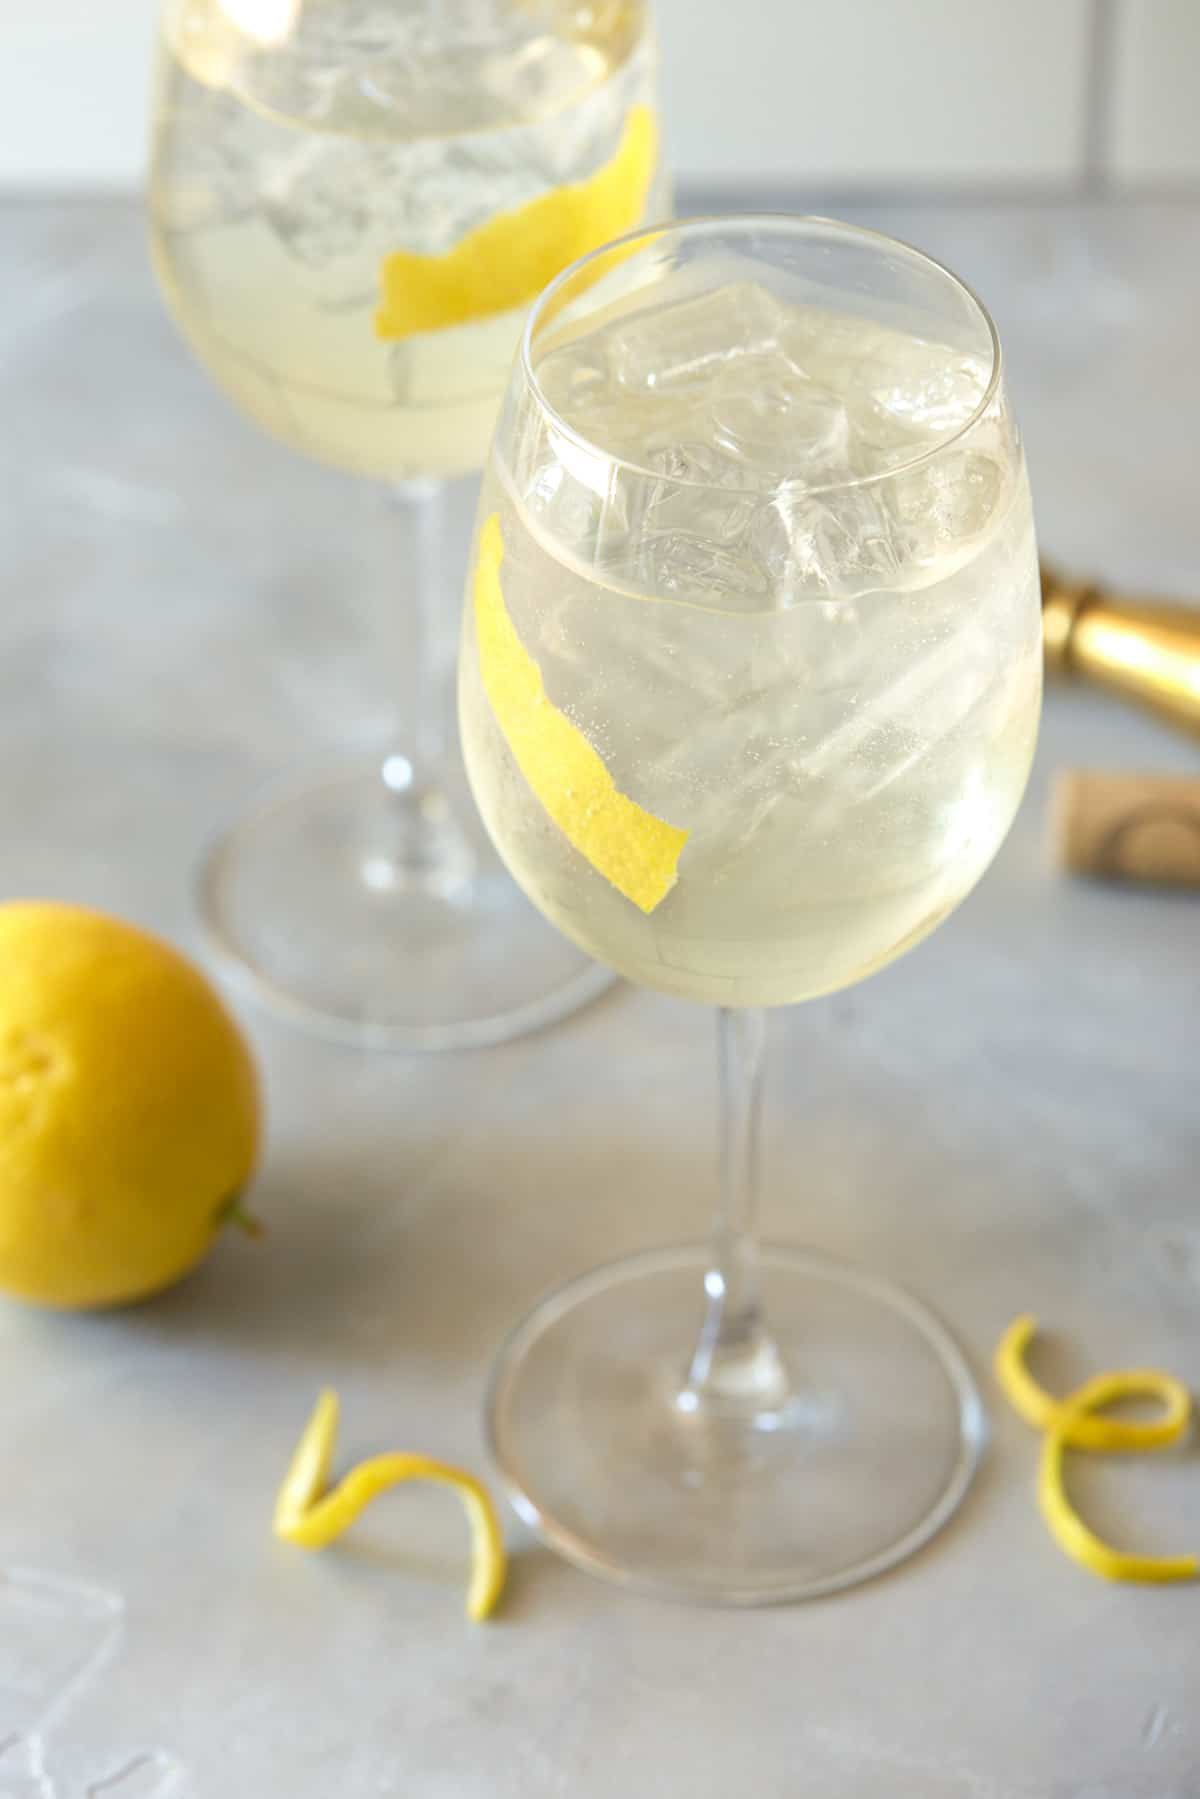 Wine glasses filled with drink and garnished with lemon peel.